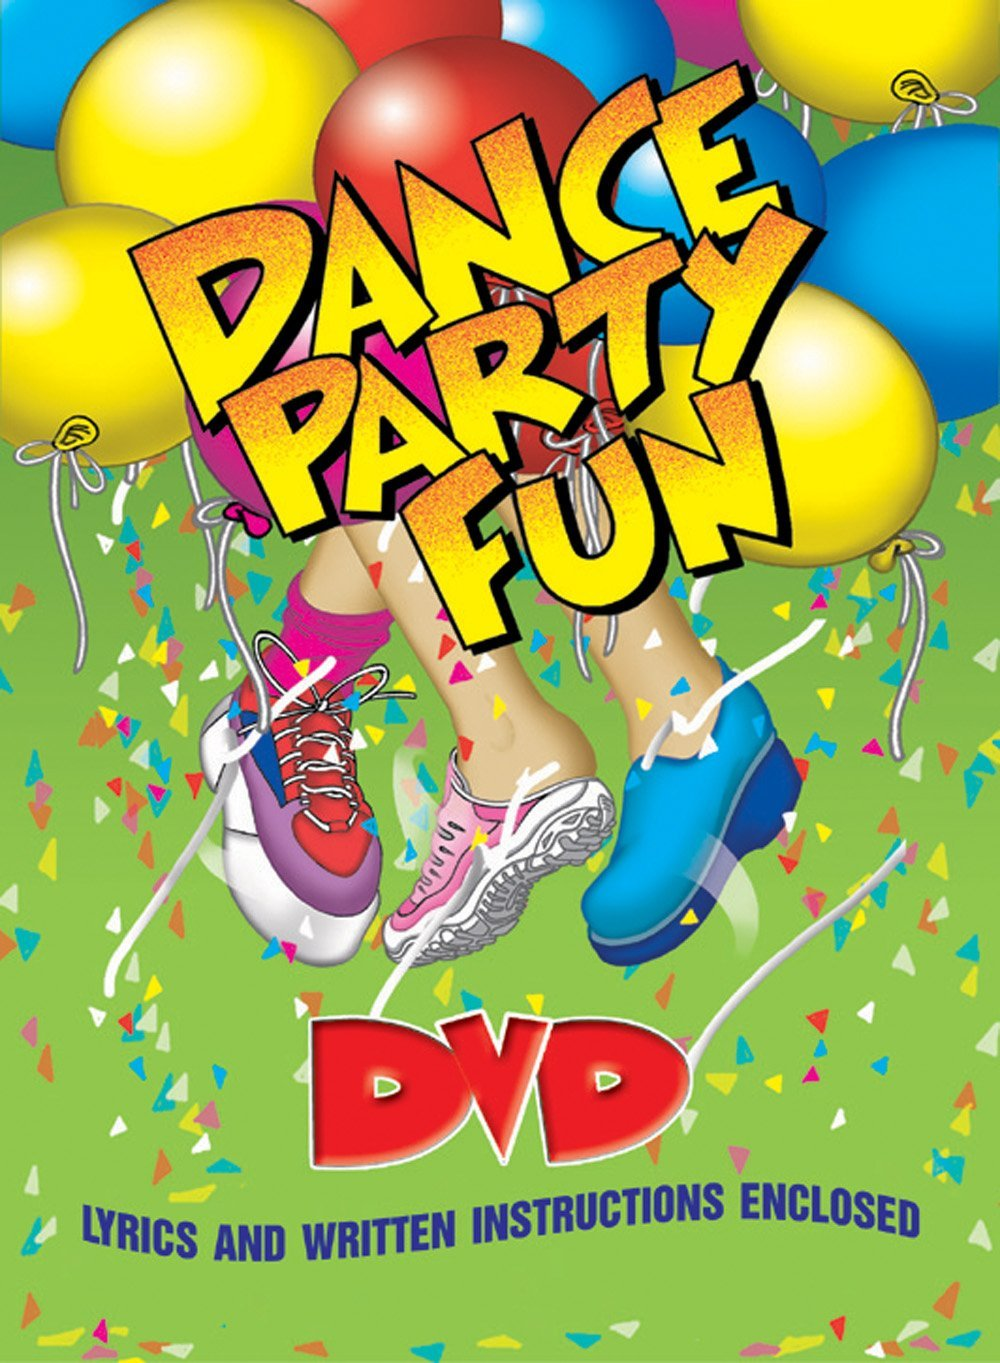 Dance Party Fun Includes Lyrics And Written Instructions by Kimbo Educational